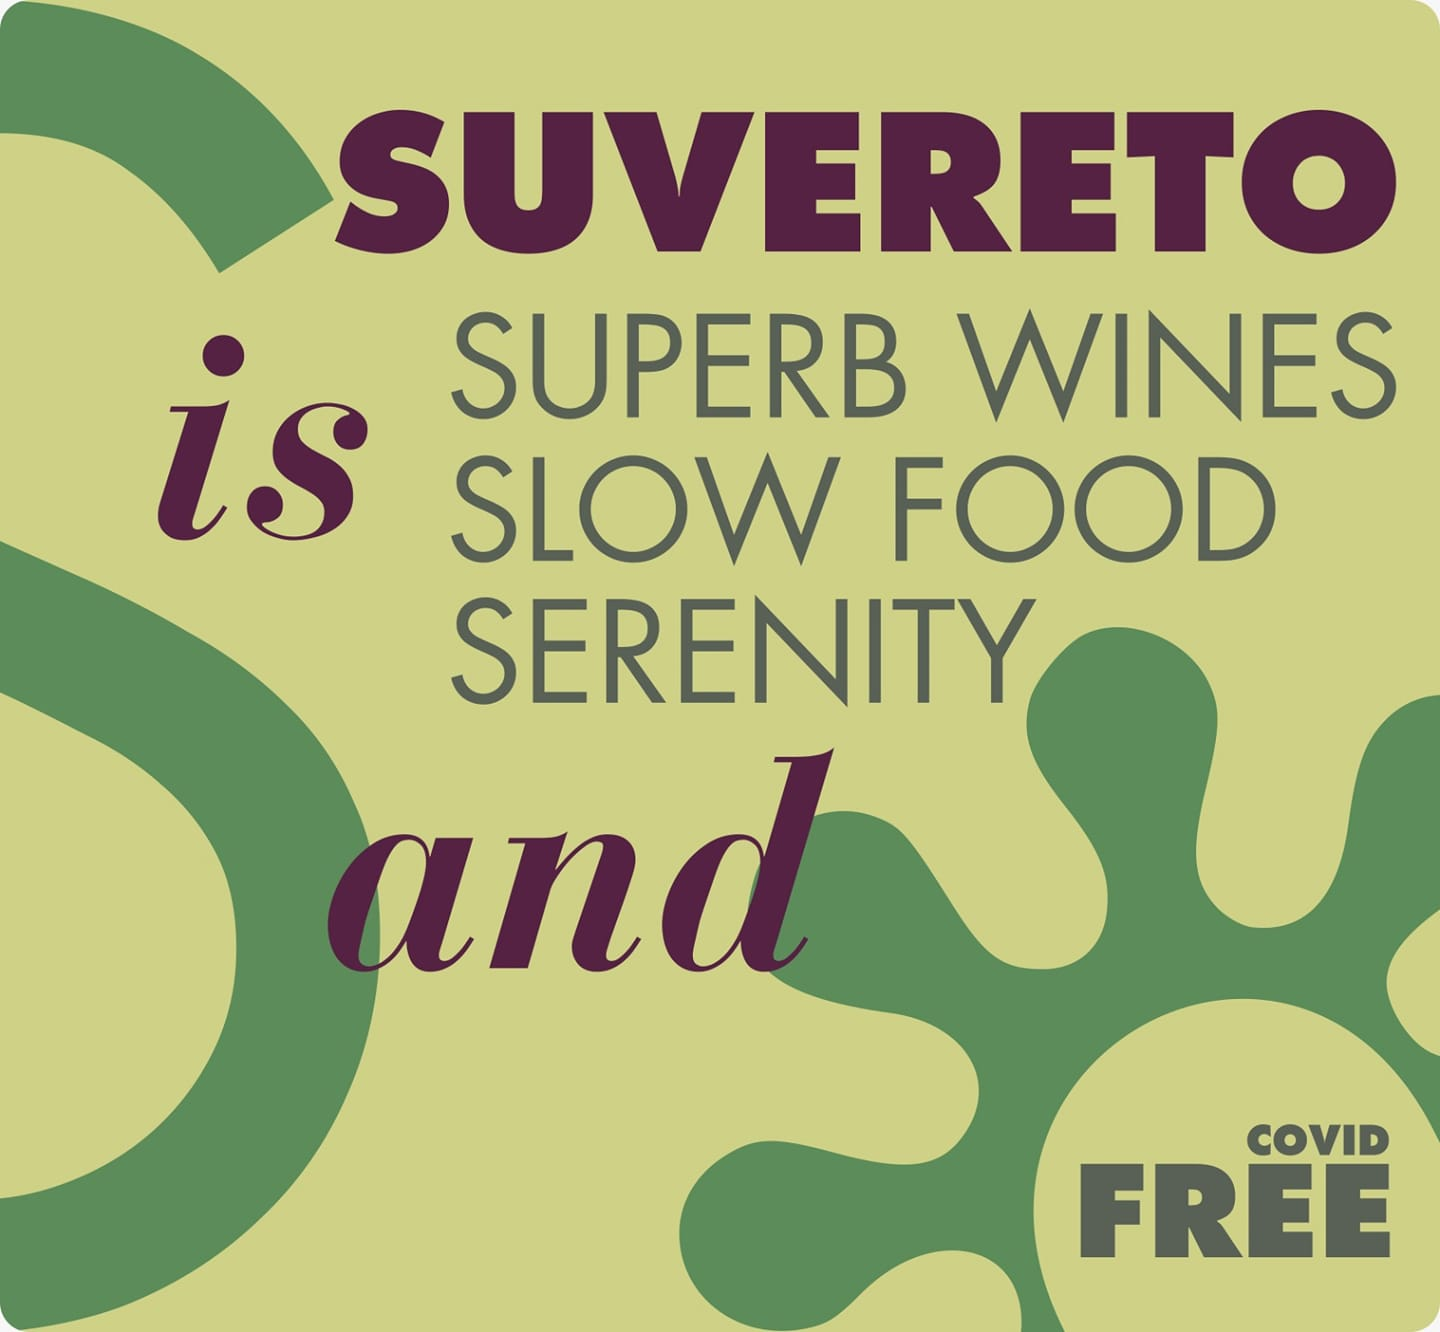 SUVERETO: SUPERB WINES, SLOW FOOD, SERENITY AND... COVID FREE!